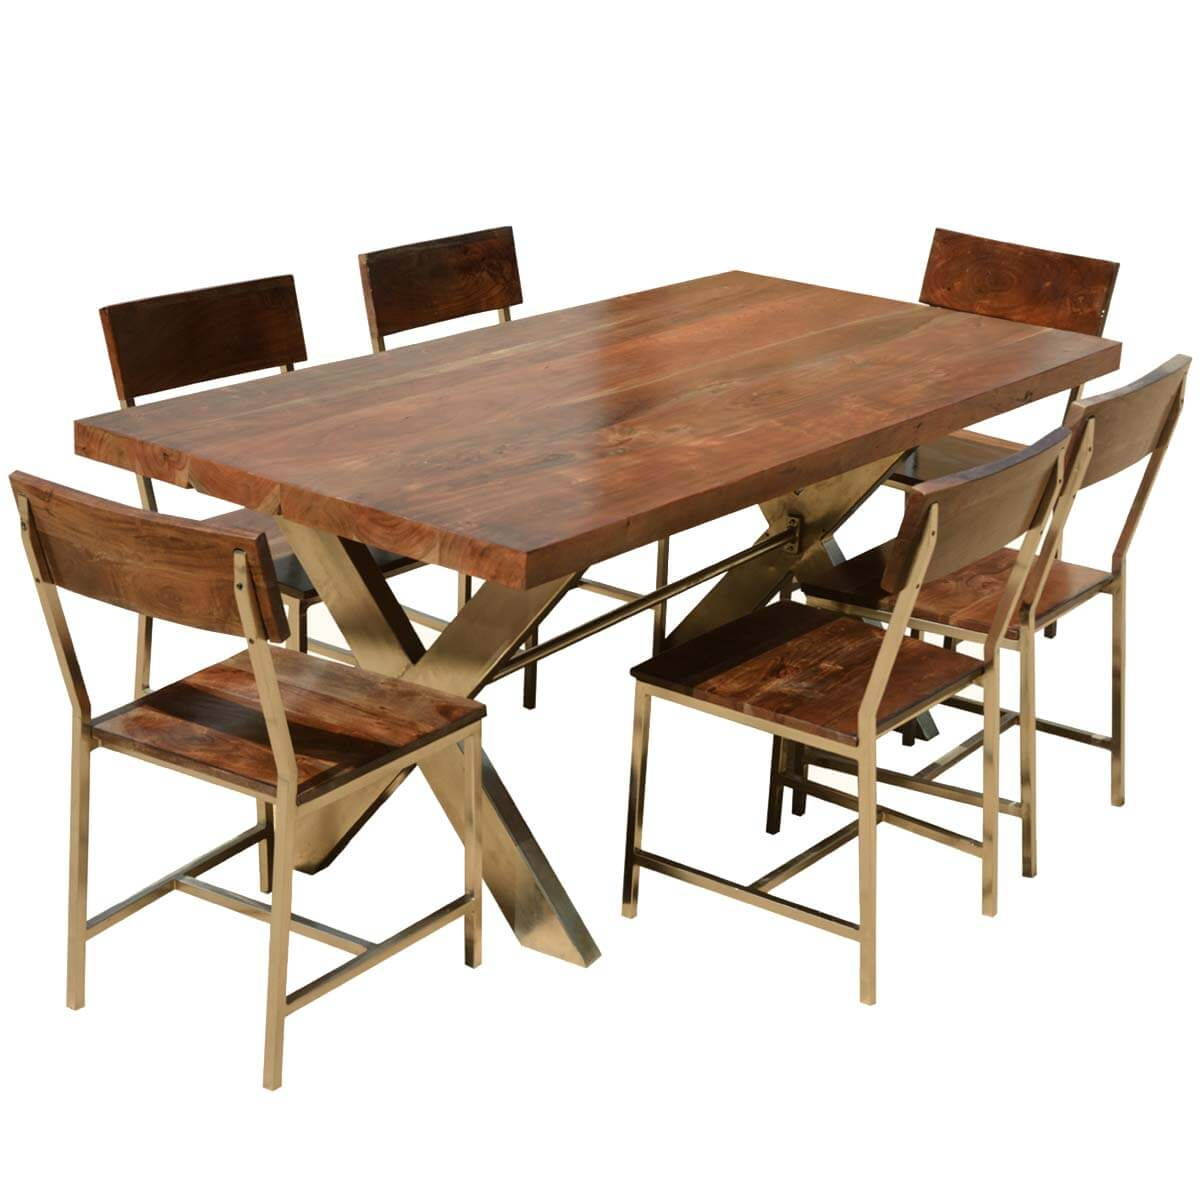 "Solid Wood & Iron Double X Pedestal 72"" Rustic Dining Table Chair Set"